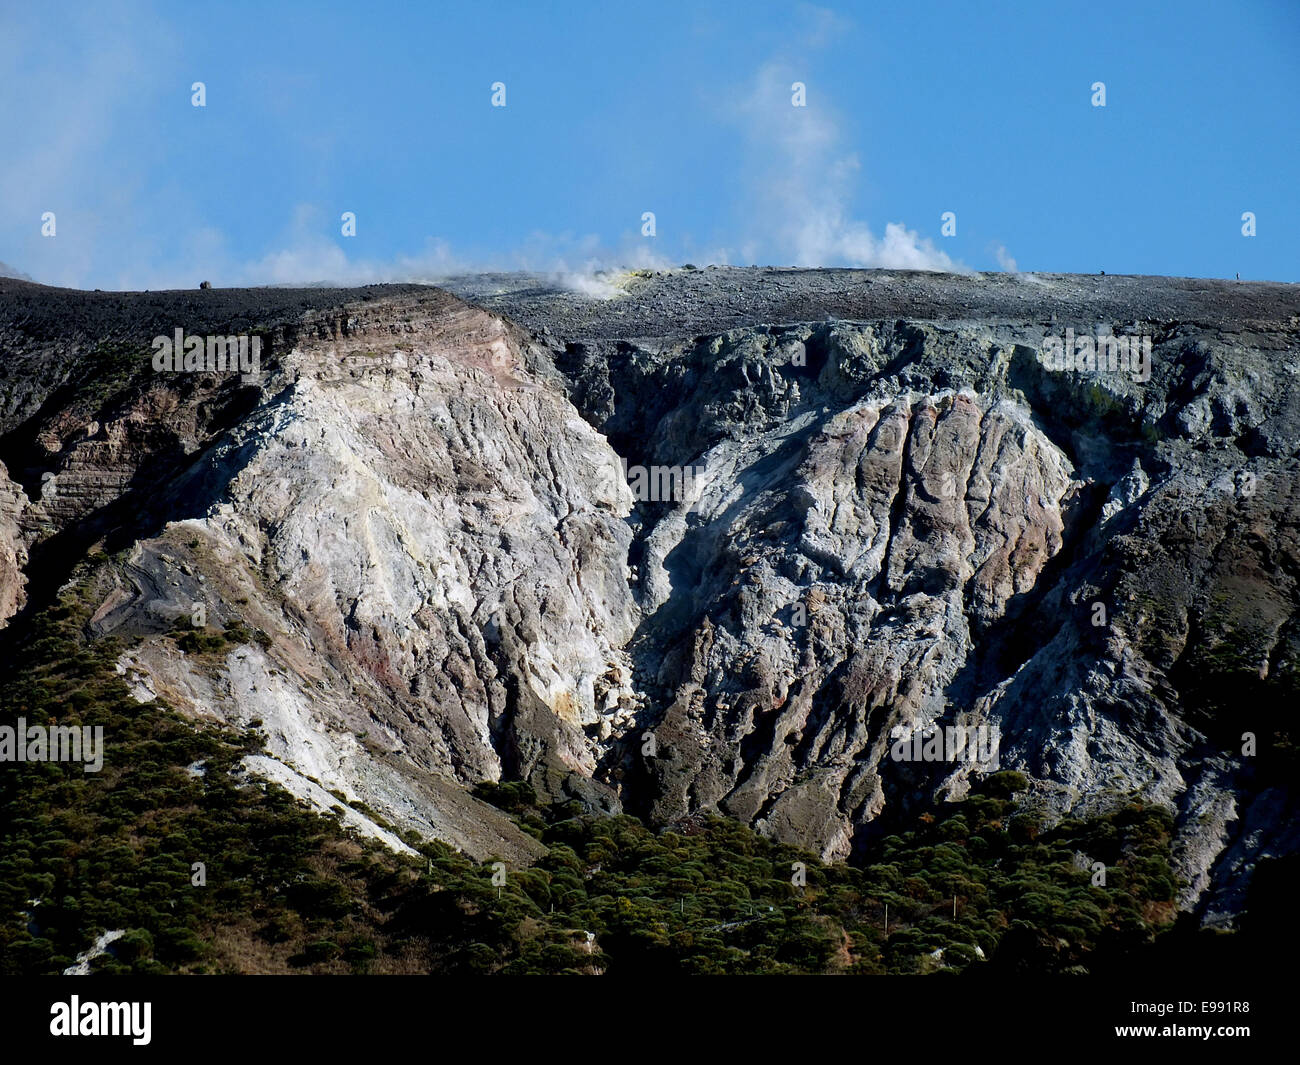 The violence of a volcanic eruption can be admired on Vulcano even after 300 years at the fossa 1. - June 2014 - Stock Image